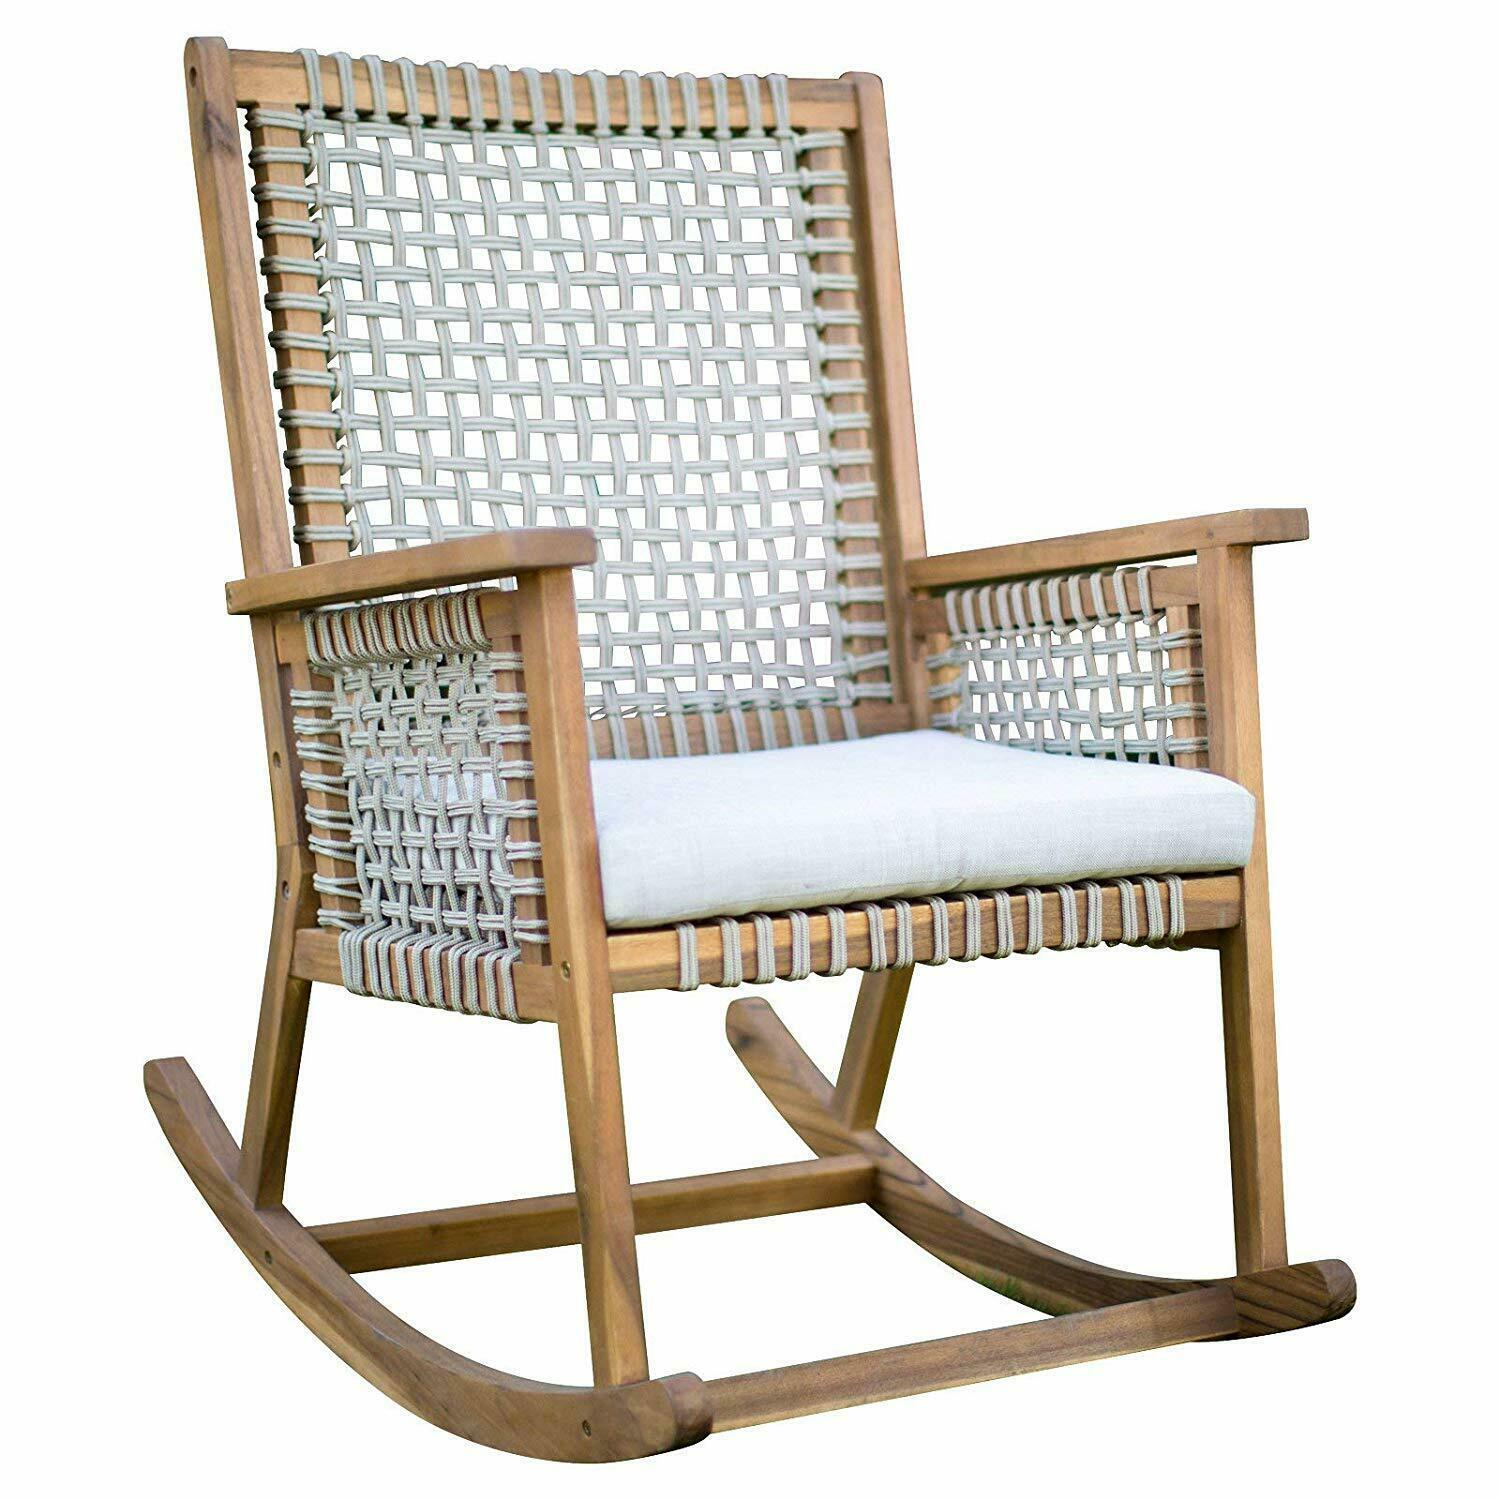 Urban Rustic Wood & Rope Outdoor Patio Rocking Chair Rocker with Seat Cushion